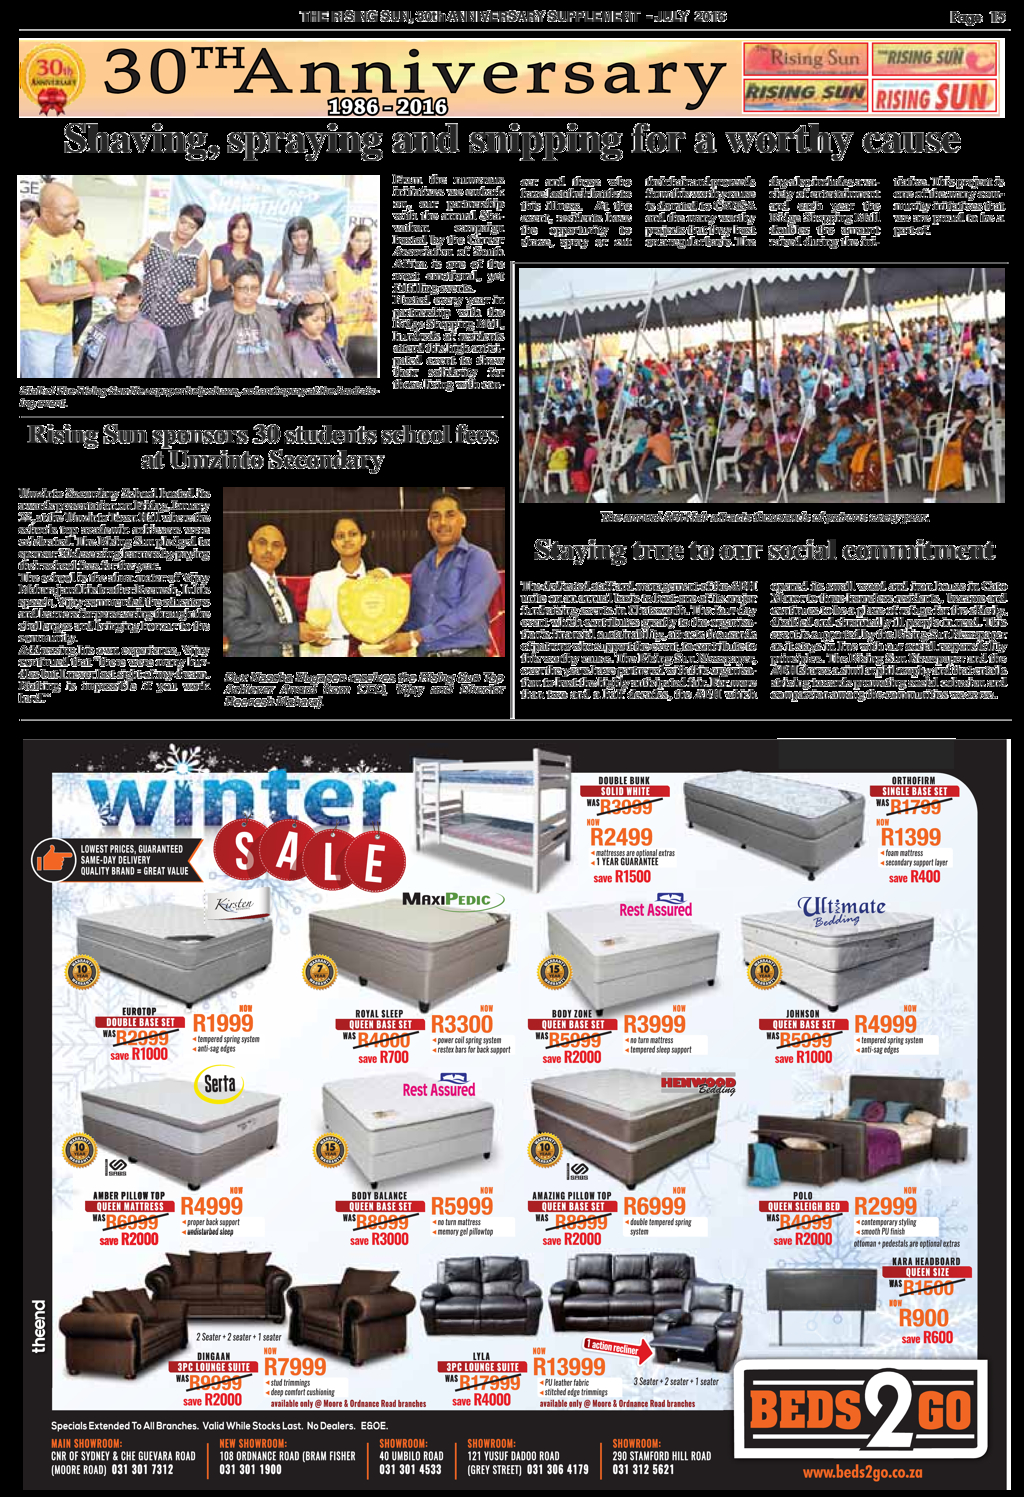 celebrating-our-30th-anniversary-epapers-page-15